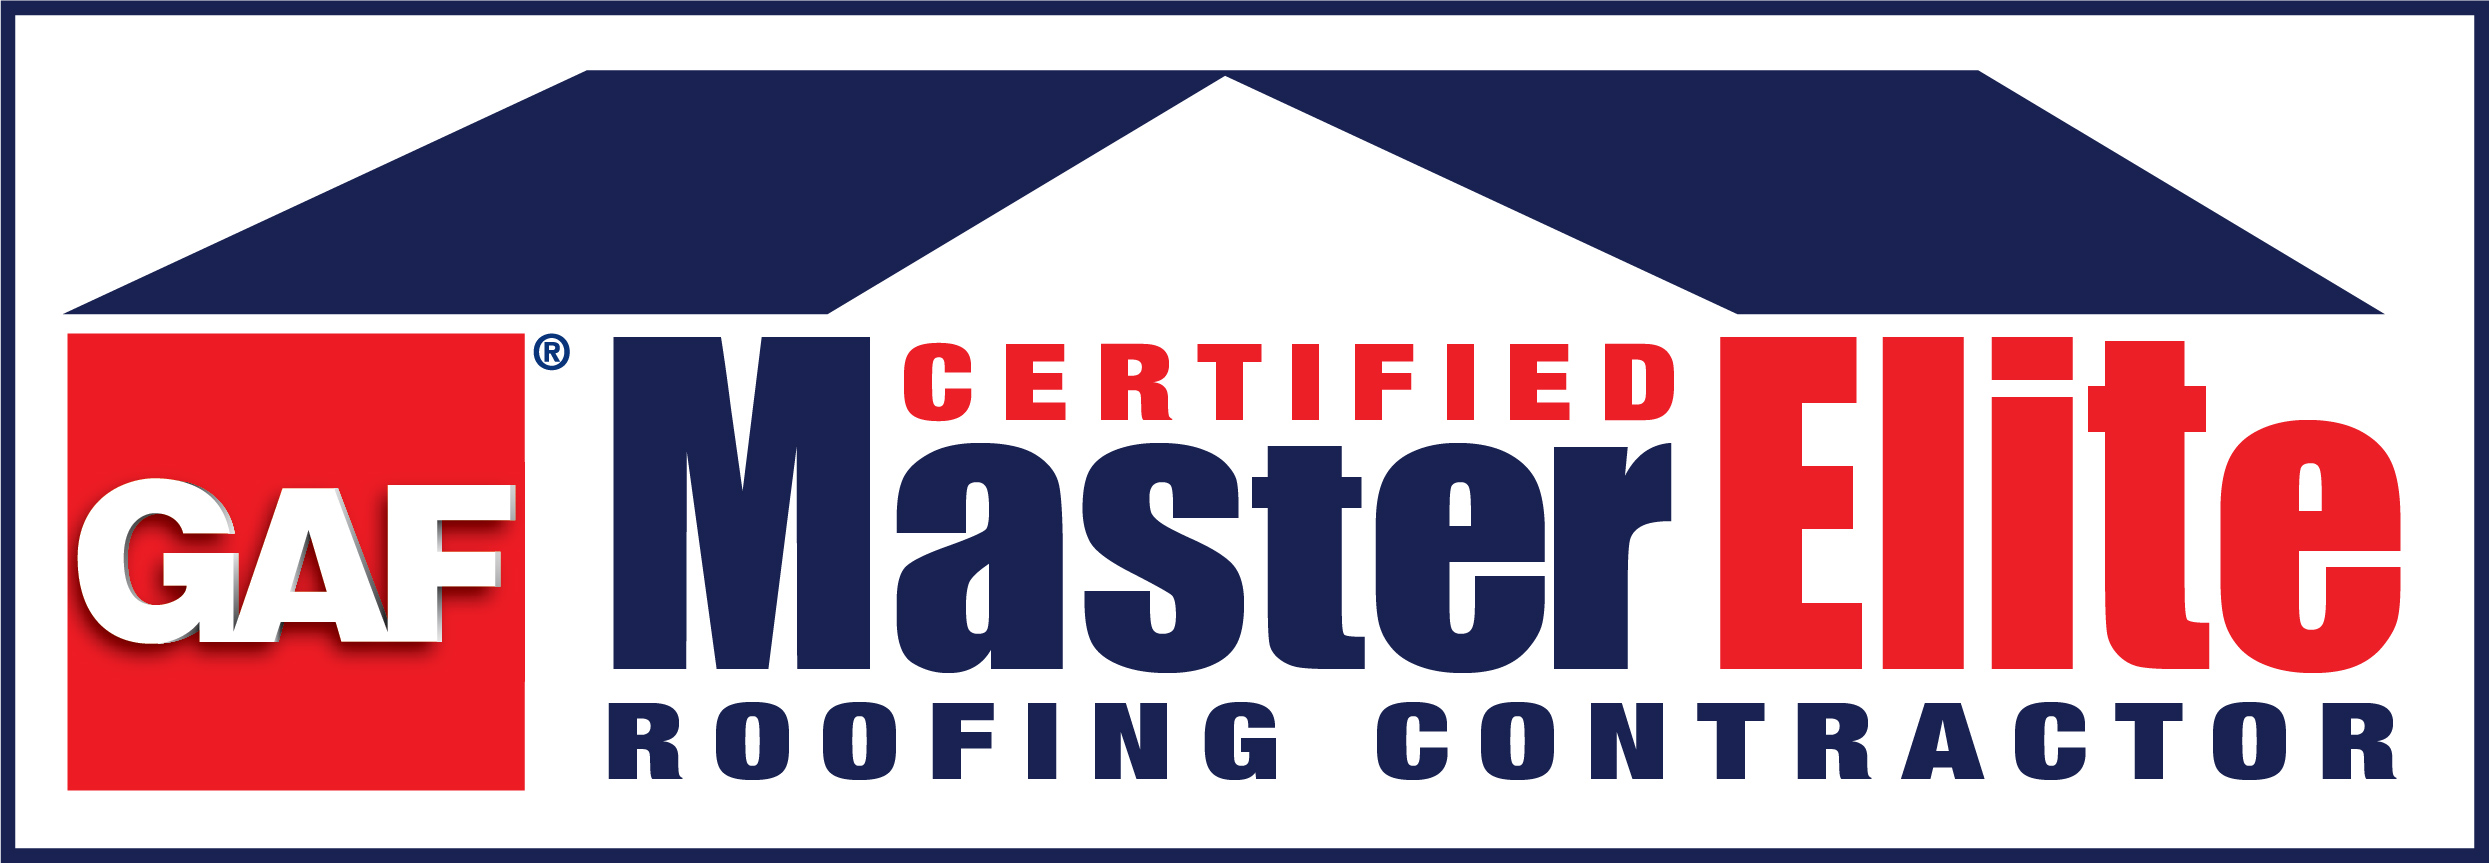 roofing company certified by GAF